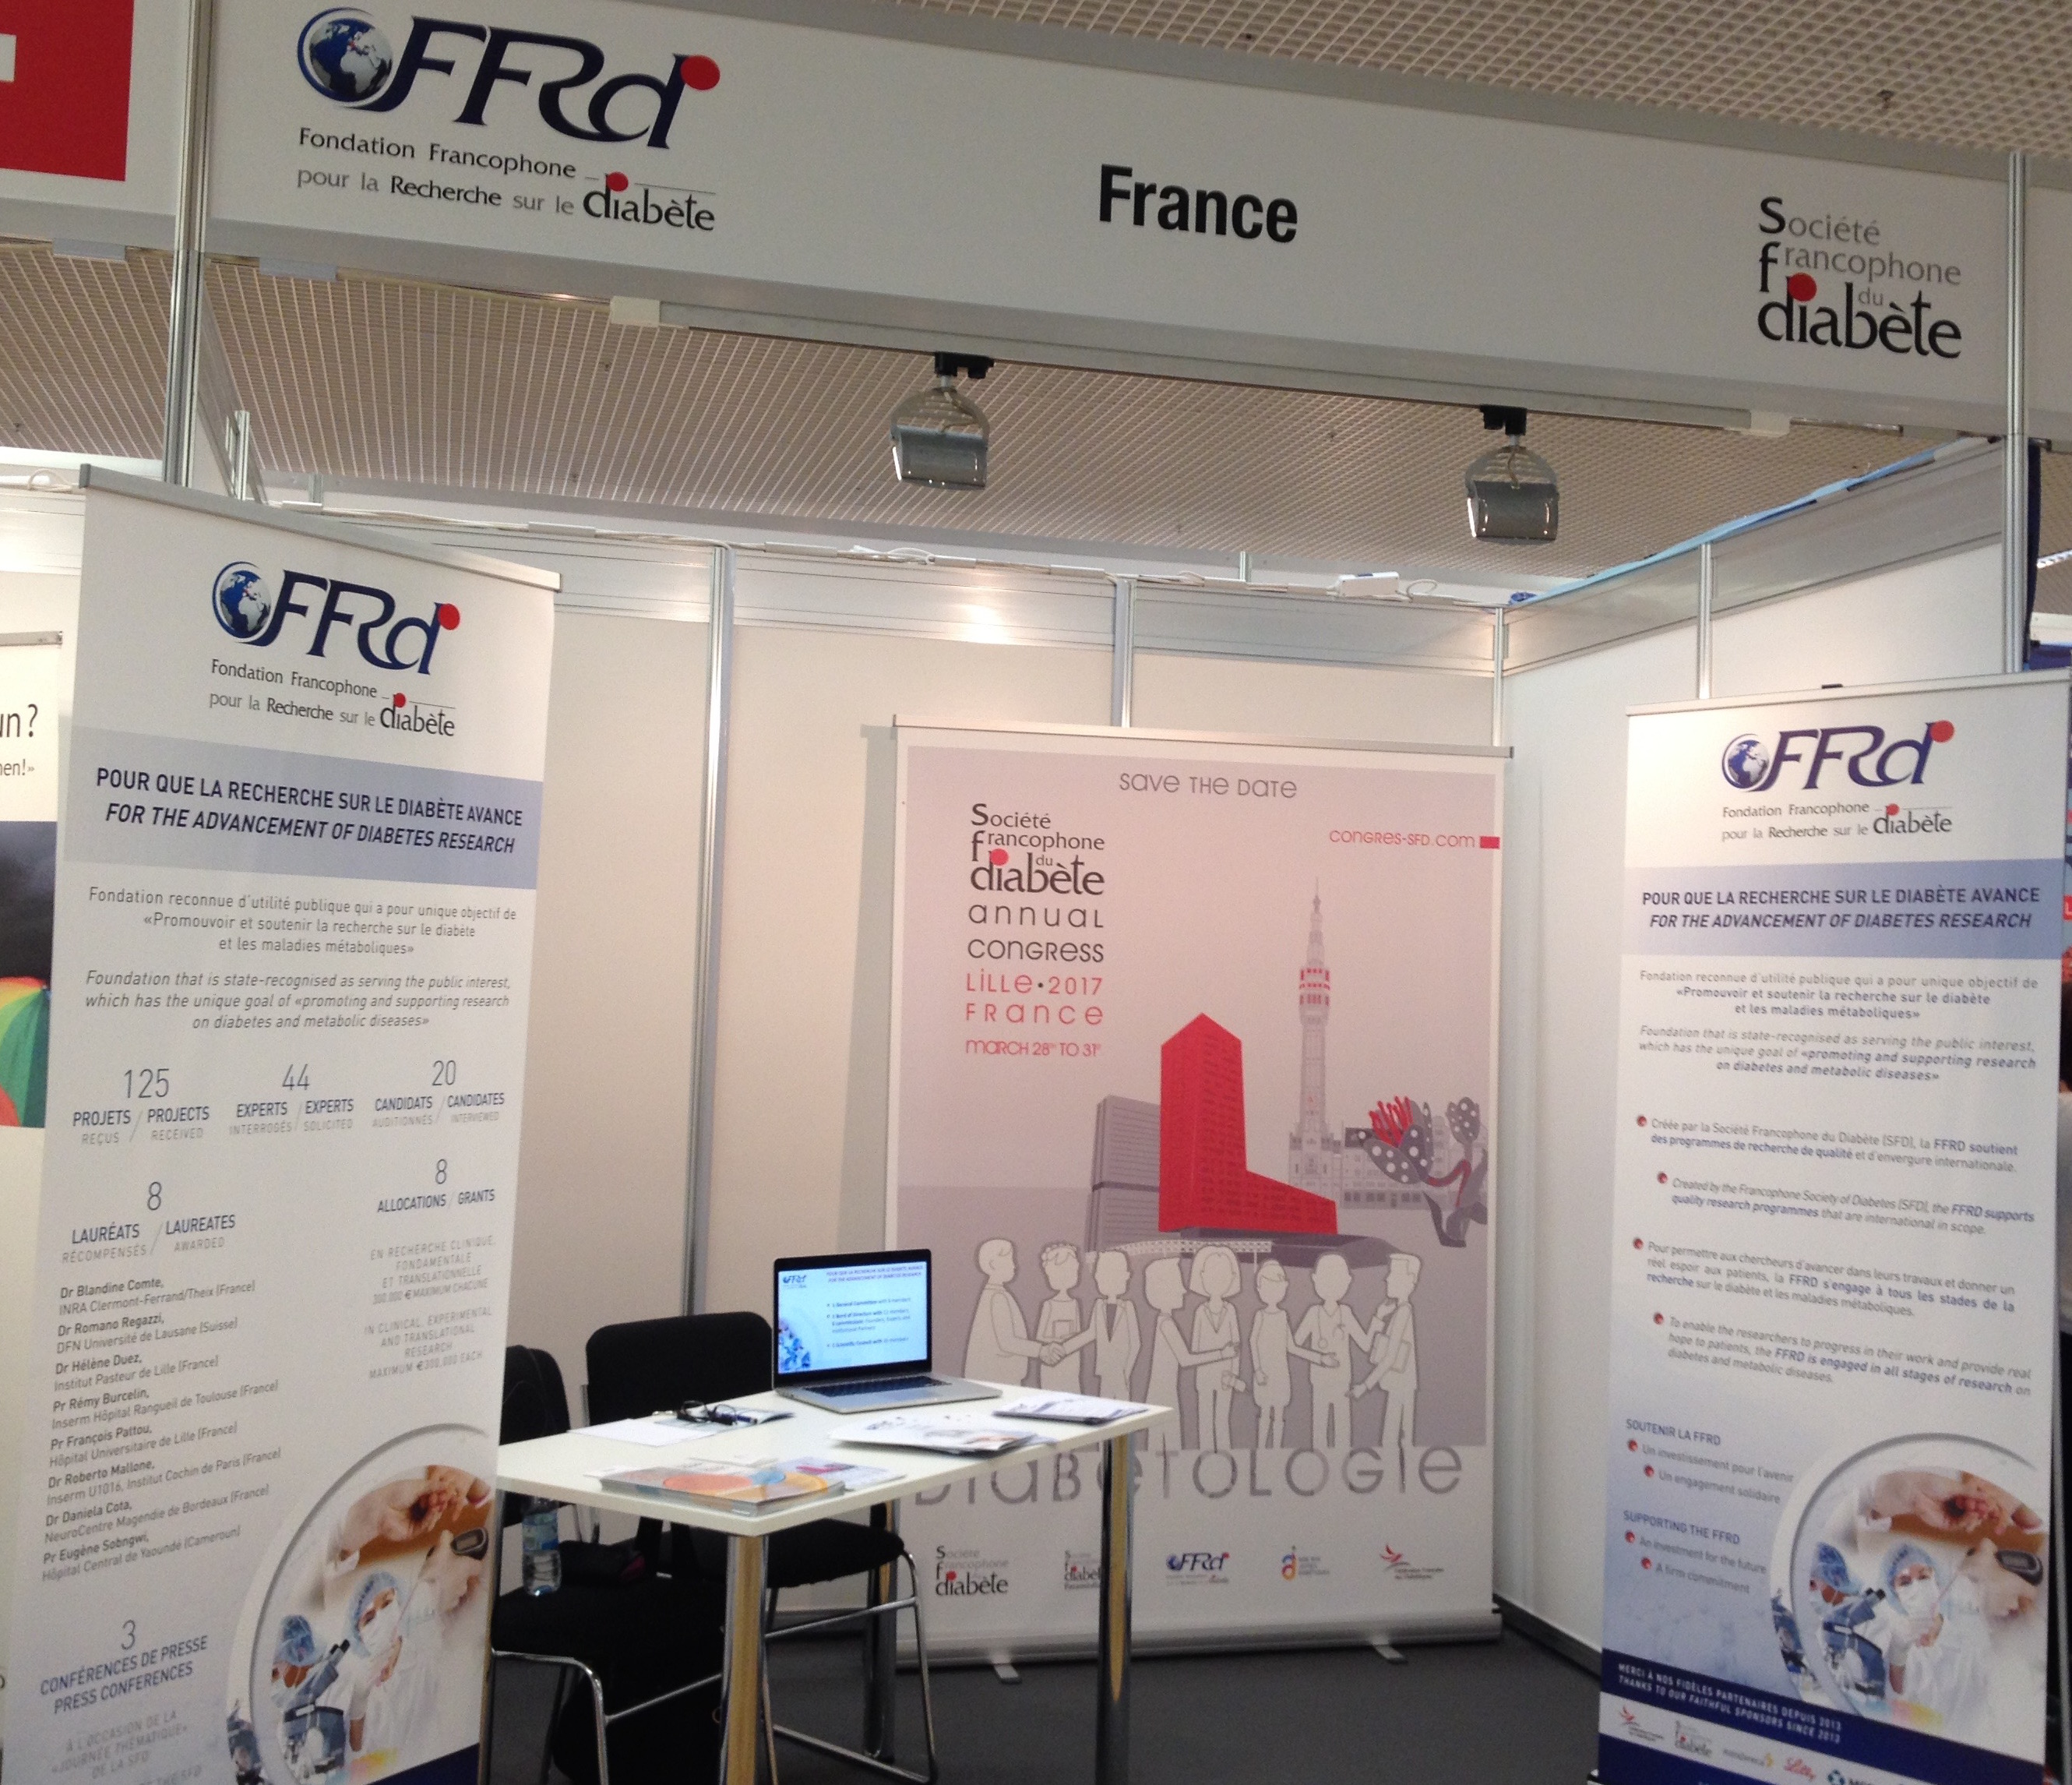 Messe SFD / FFRD booth